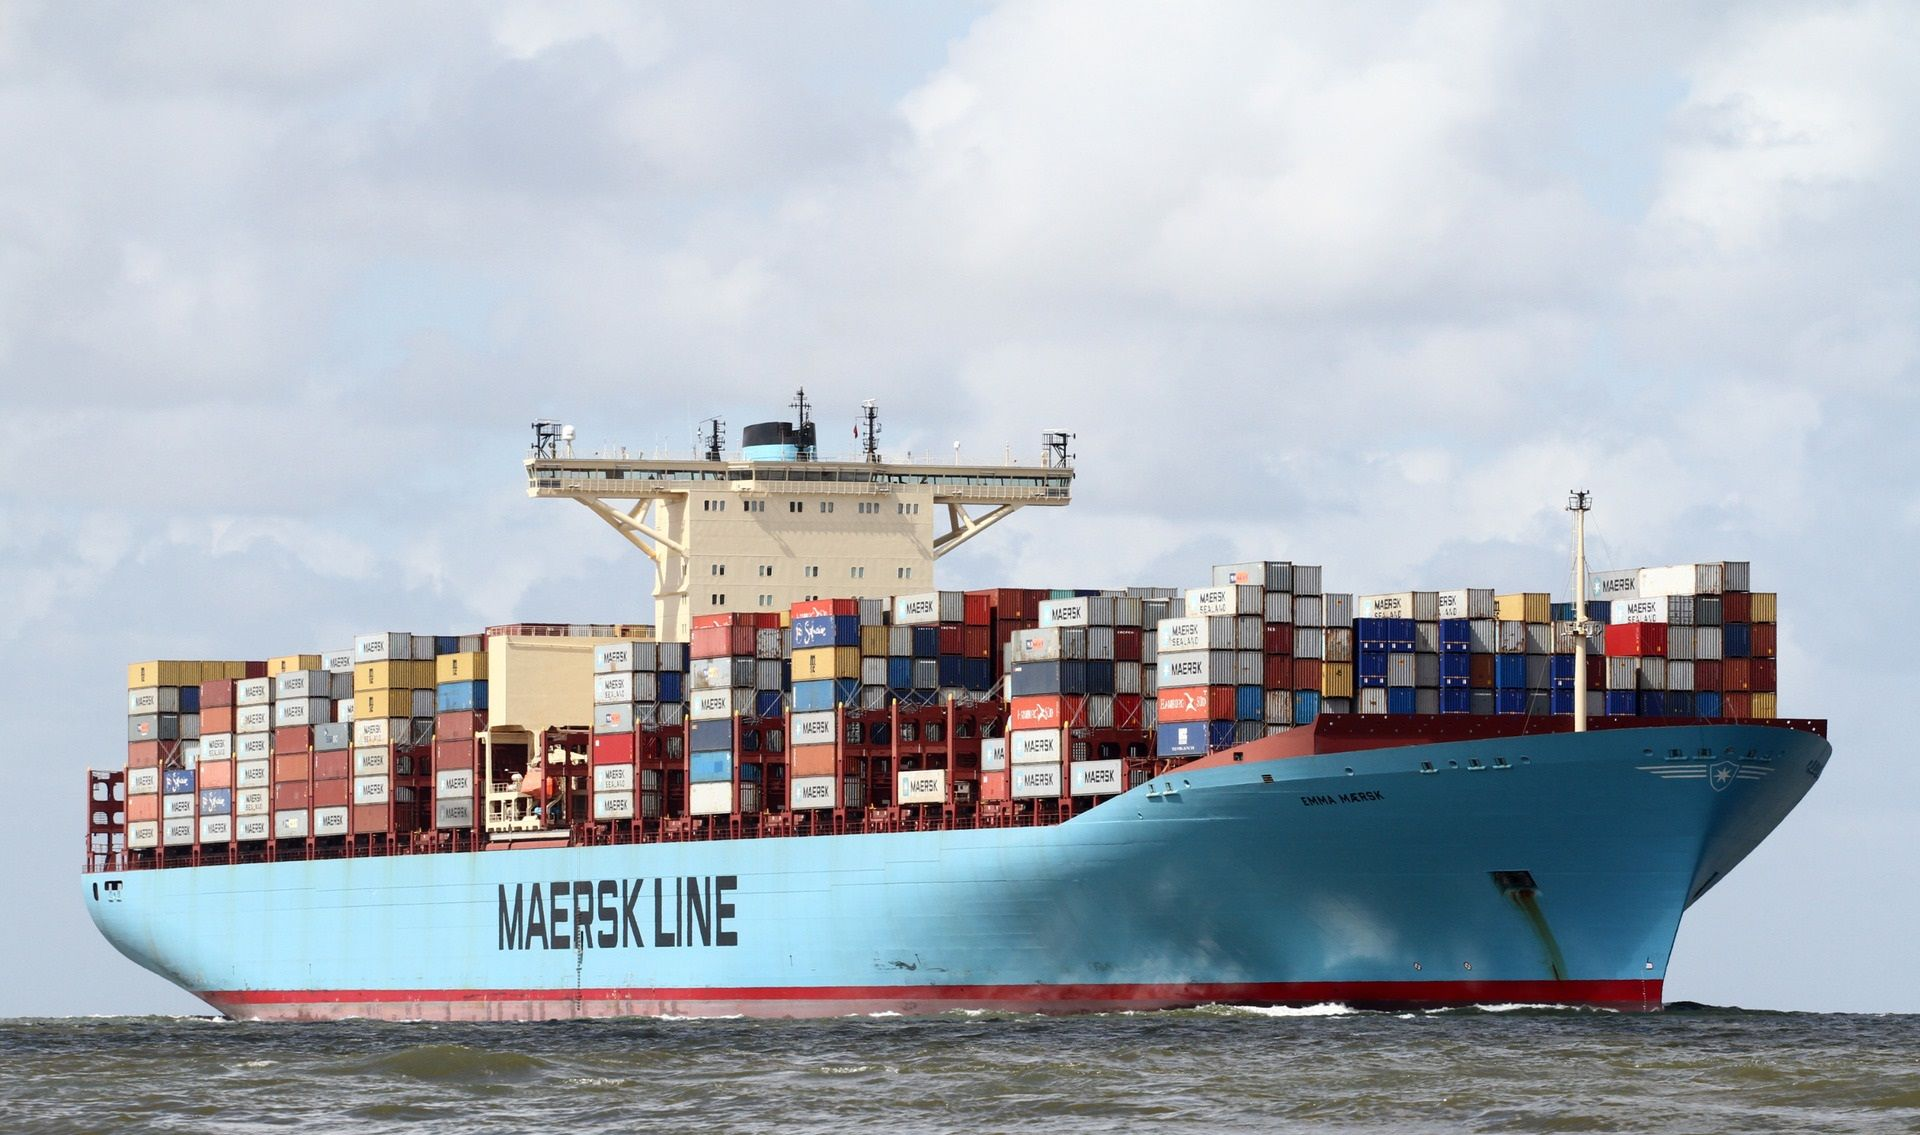 Largest Container Ship Emma Maersk Departing Maersk Line Large Containers Ship